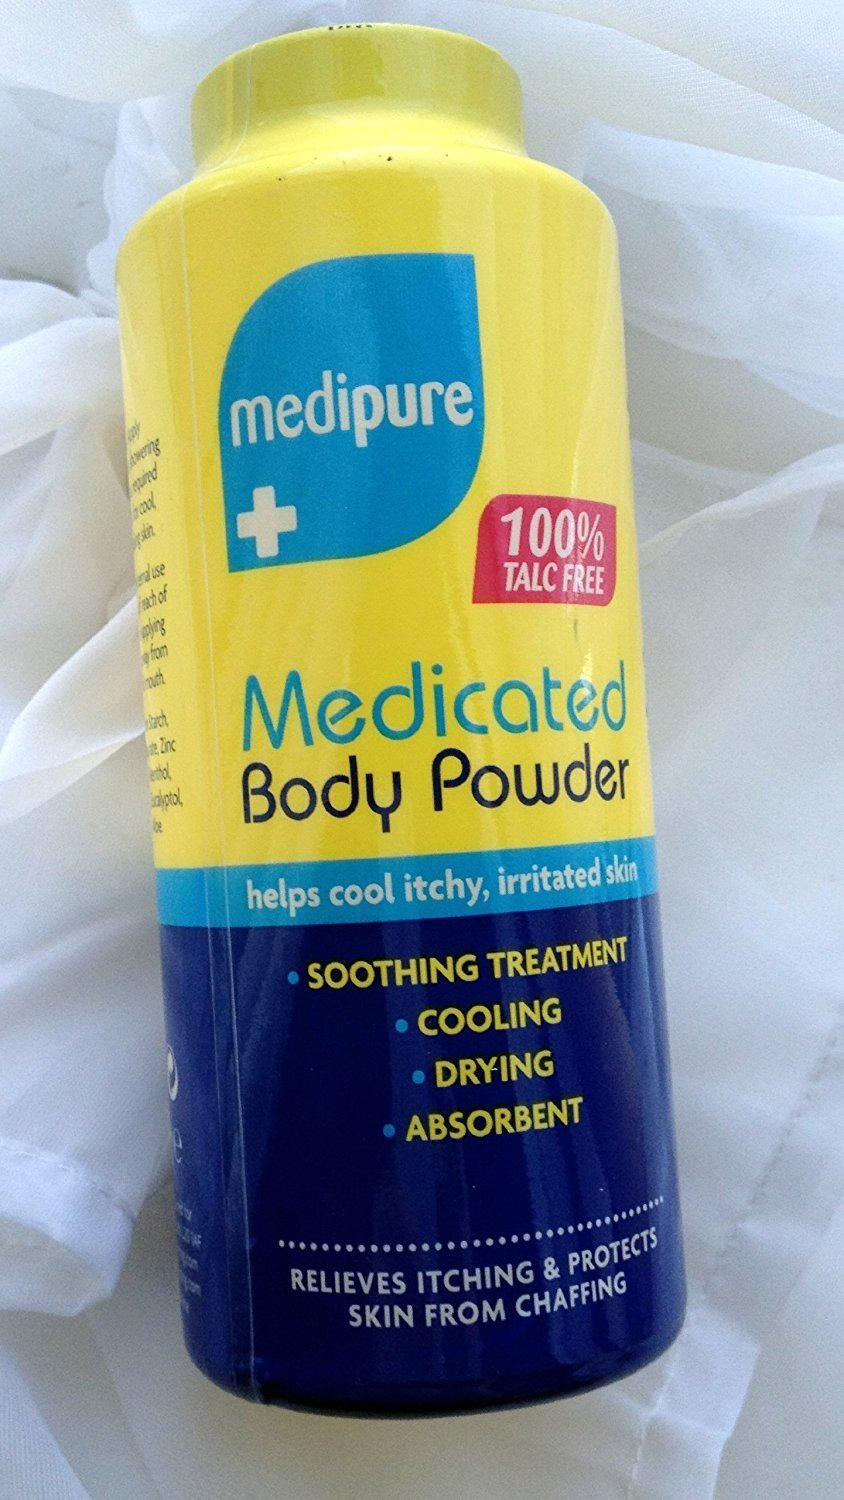 Medipure Unisex Medicated Body Powder For Itchy, Irritated Skin-200g new by Medipure TP201A